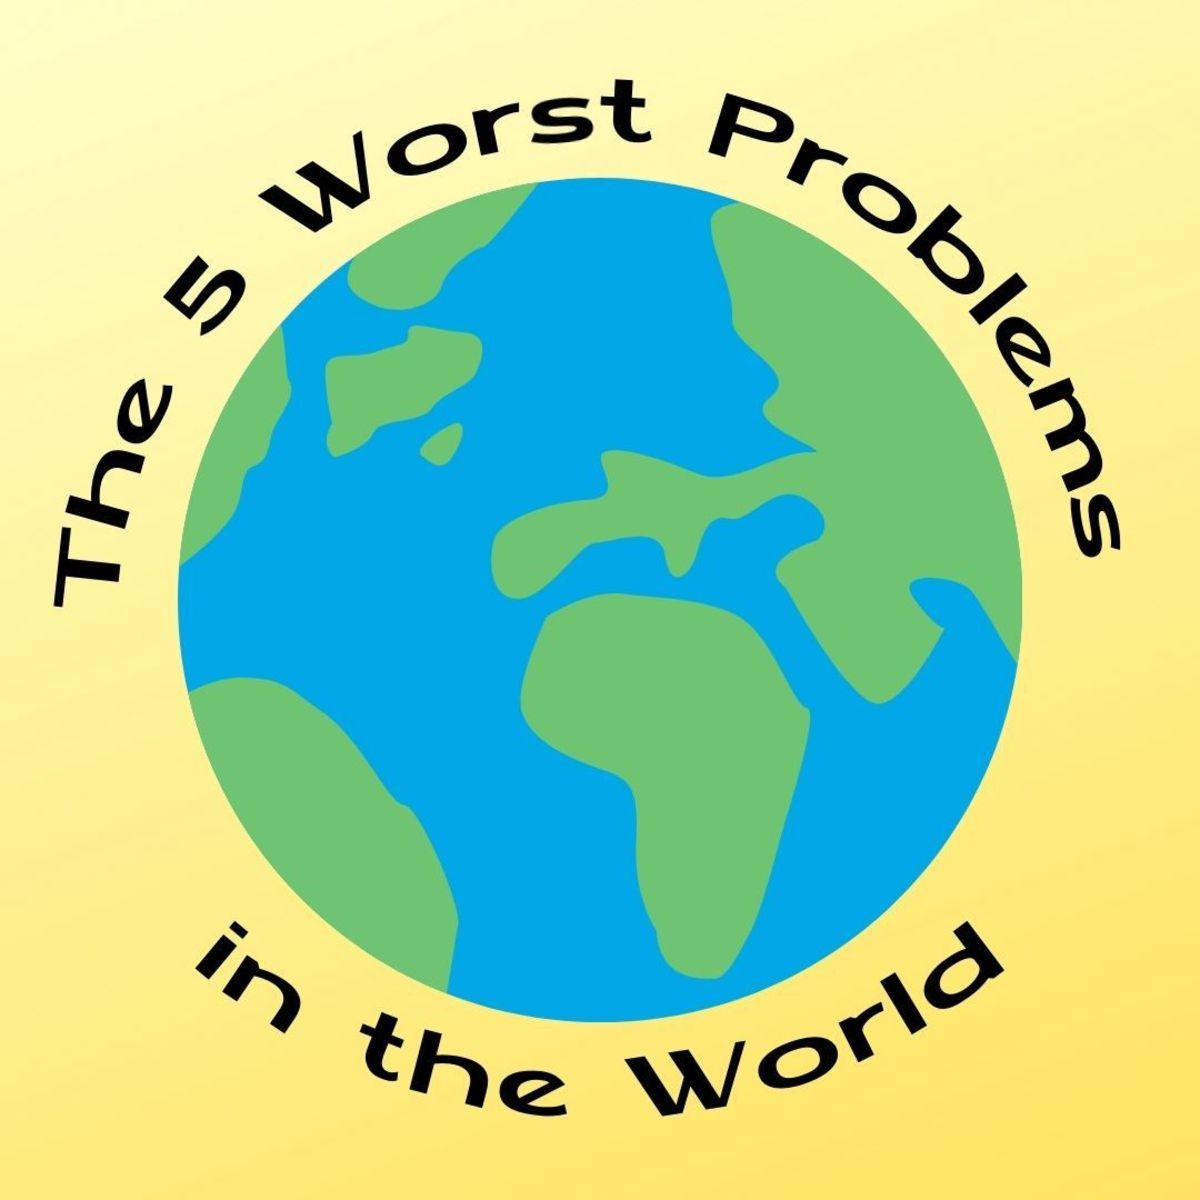 The top five global issues facing the world are wealth inequality, famine, homelessness, disease, and war.